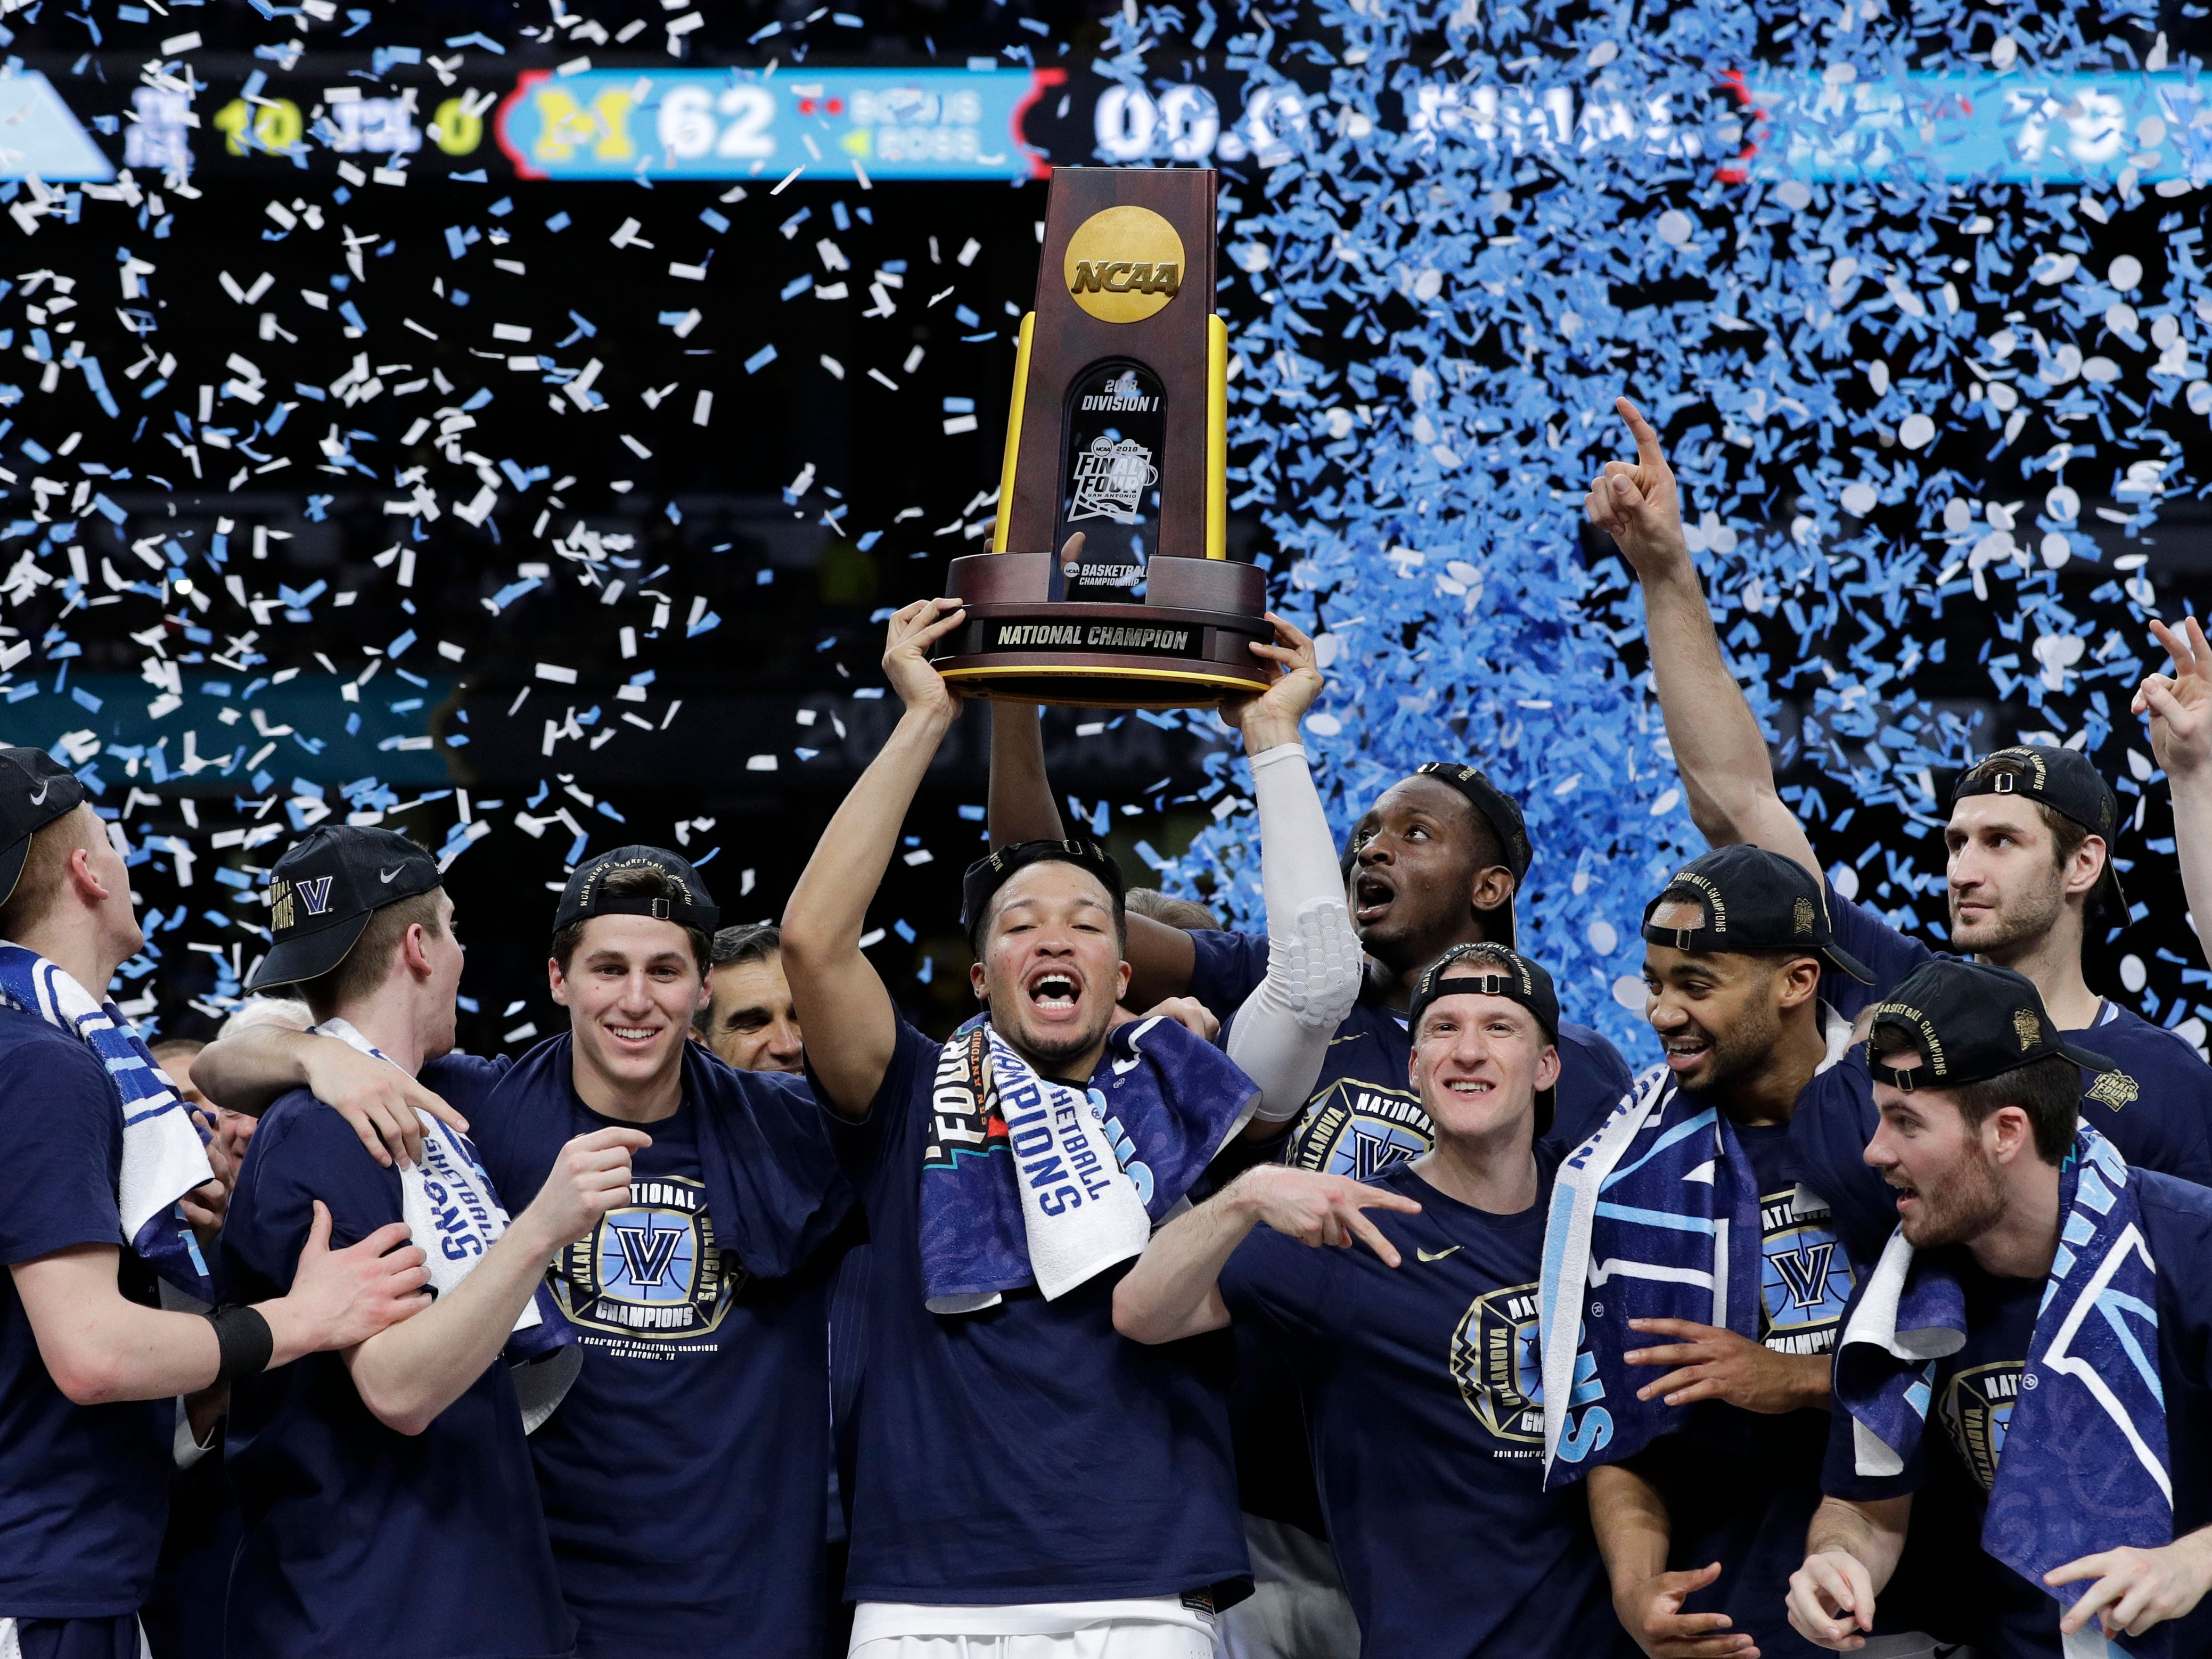 NCAA tournament: Let the games begin - in earnest